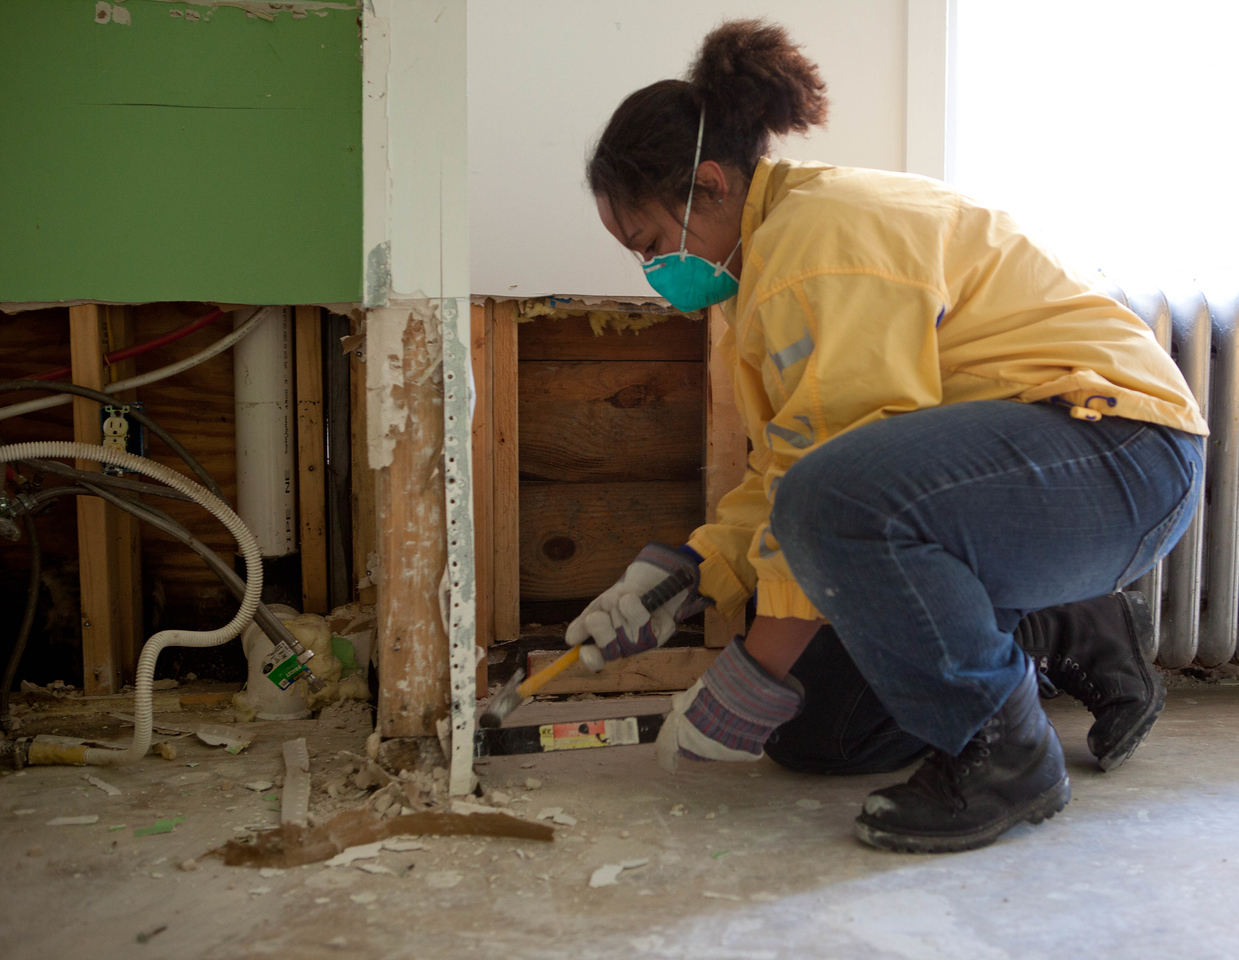 AmeriCorps member removing dry wall in a home in Atlantic City, NJ. Corporation for National and Community Service Photo.